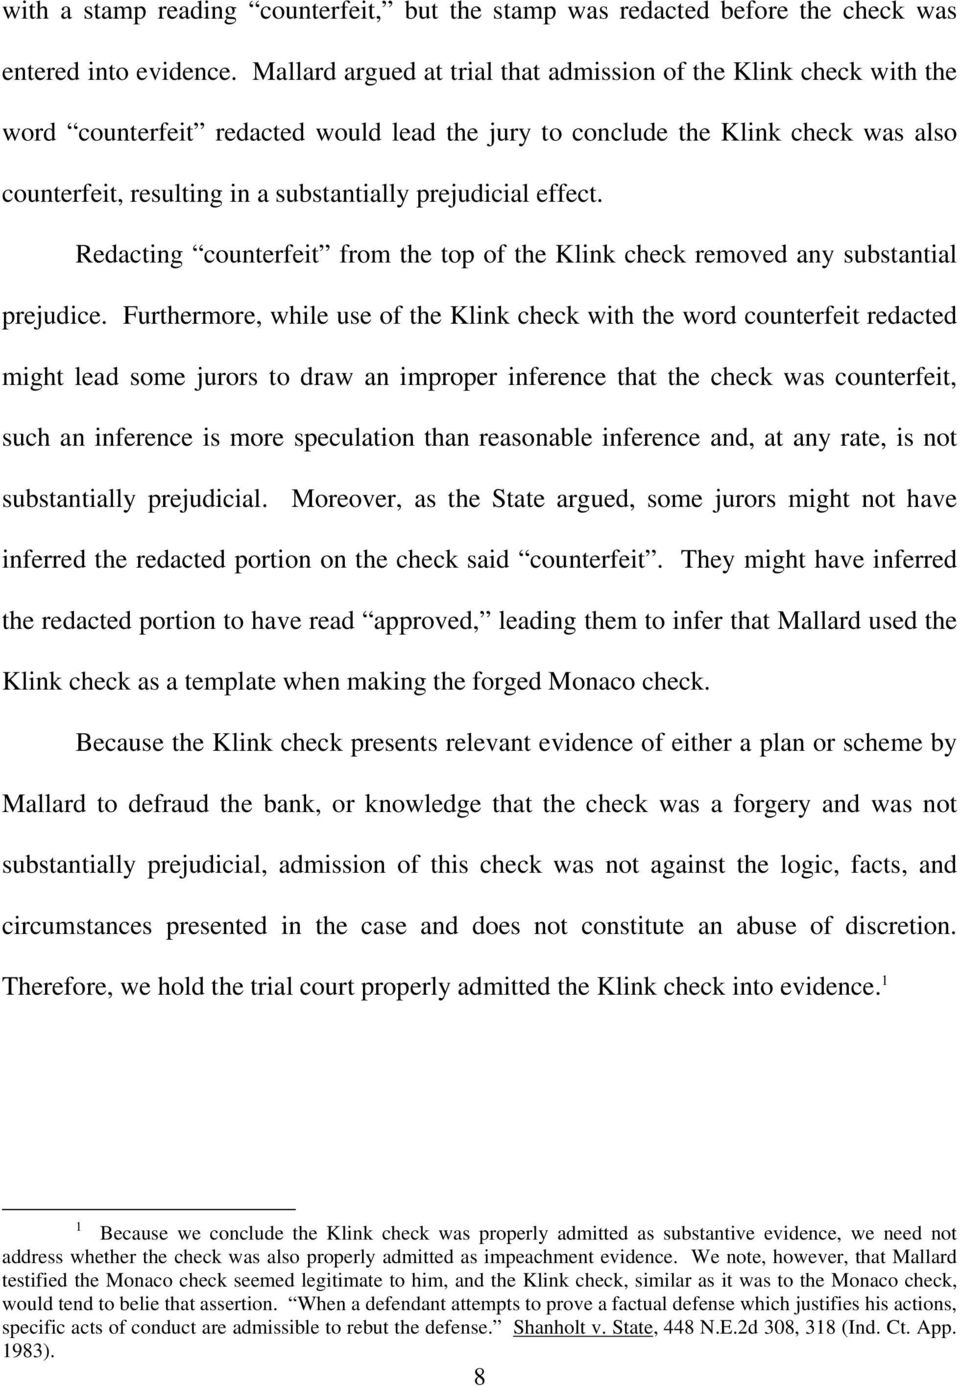 prejudicial effect. Redacting counterfeit from the top of the Klink check removed any substantial prejudice.